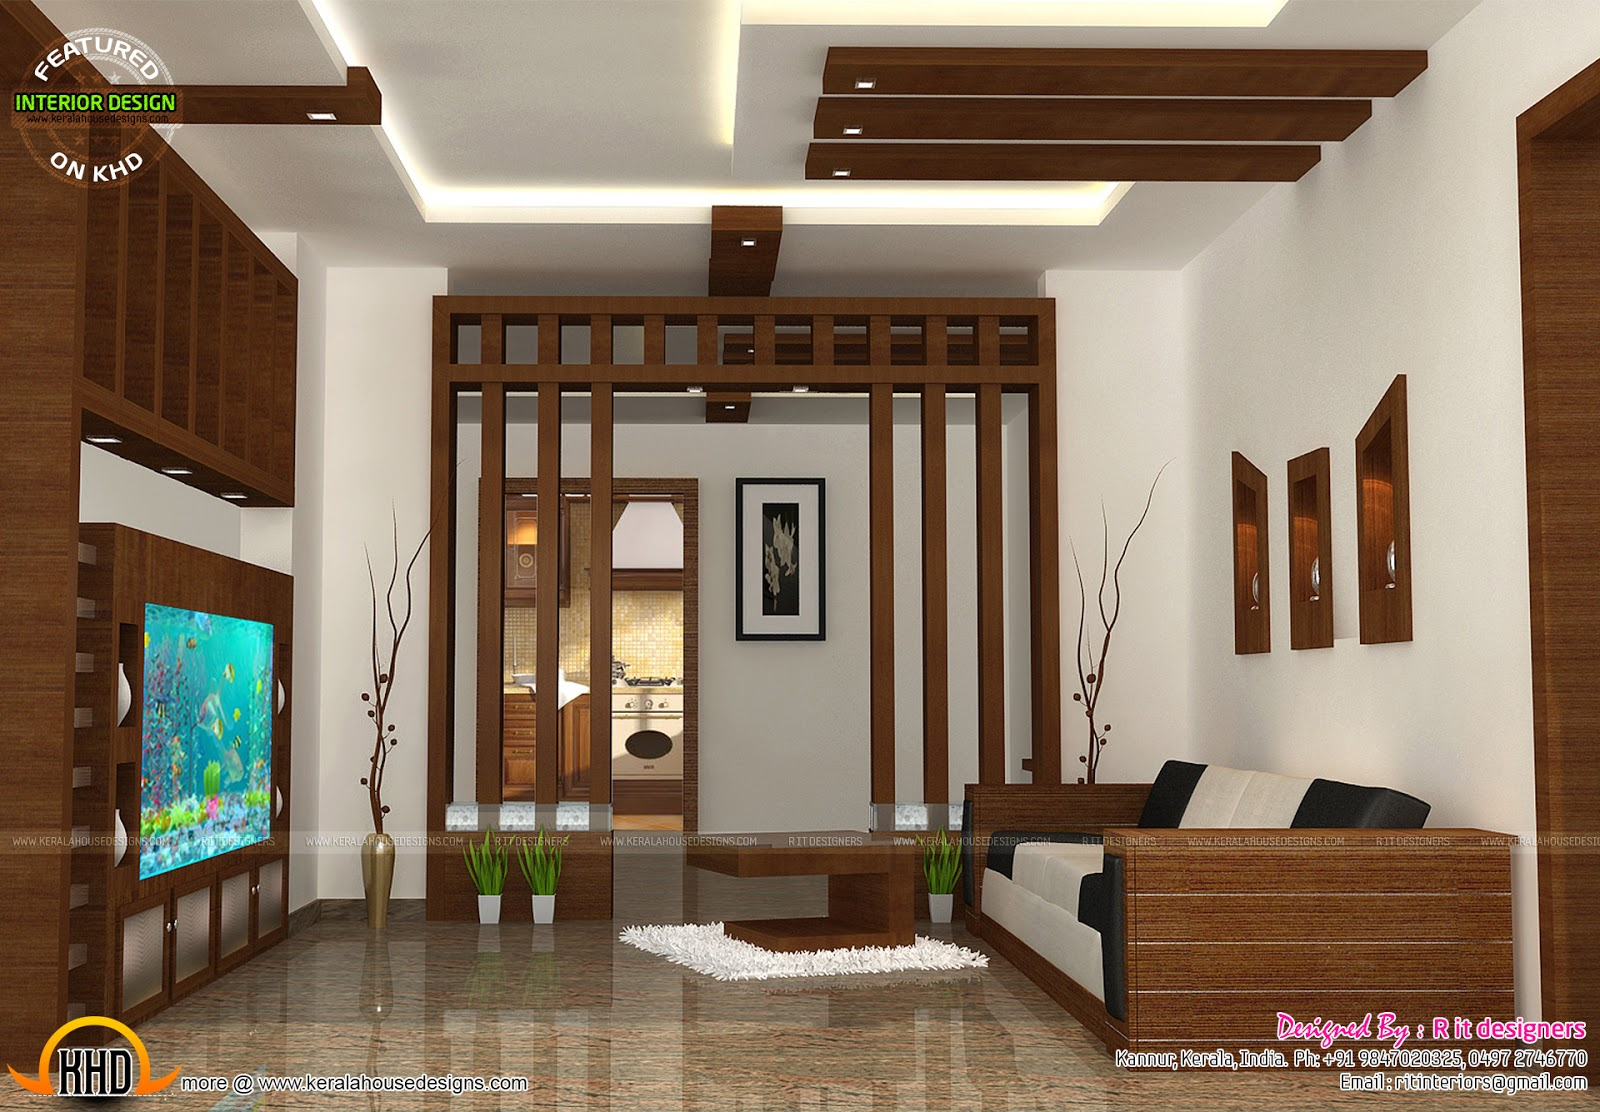 Wooden finish interiors kerala home design and floor plans for Interior design ideas for small homes in kerala